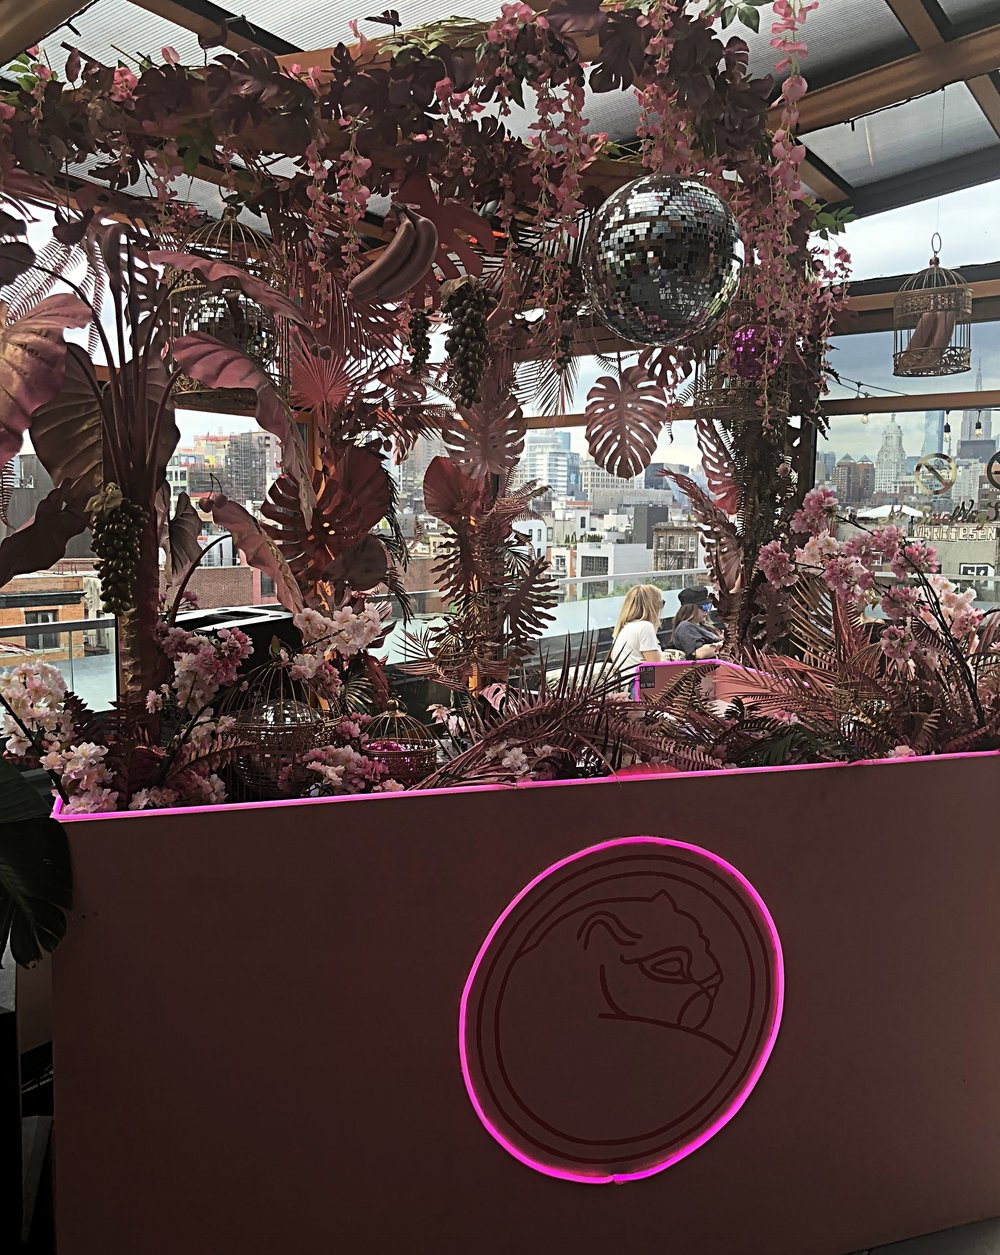 Pink Jungle - Make Believe is one of the newest rooftops on on the East Side and it's interiors speak to the neighborhood and crowd; funky, edgy and fun. Taking different props and painting them one color is a great way to create a purposeful artistic surprise that disassociates itself from the actual prop and adds a whimsical flair. All the details in this space were not missed and we didn't mind the drinks either!